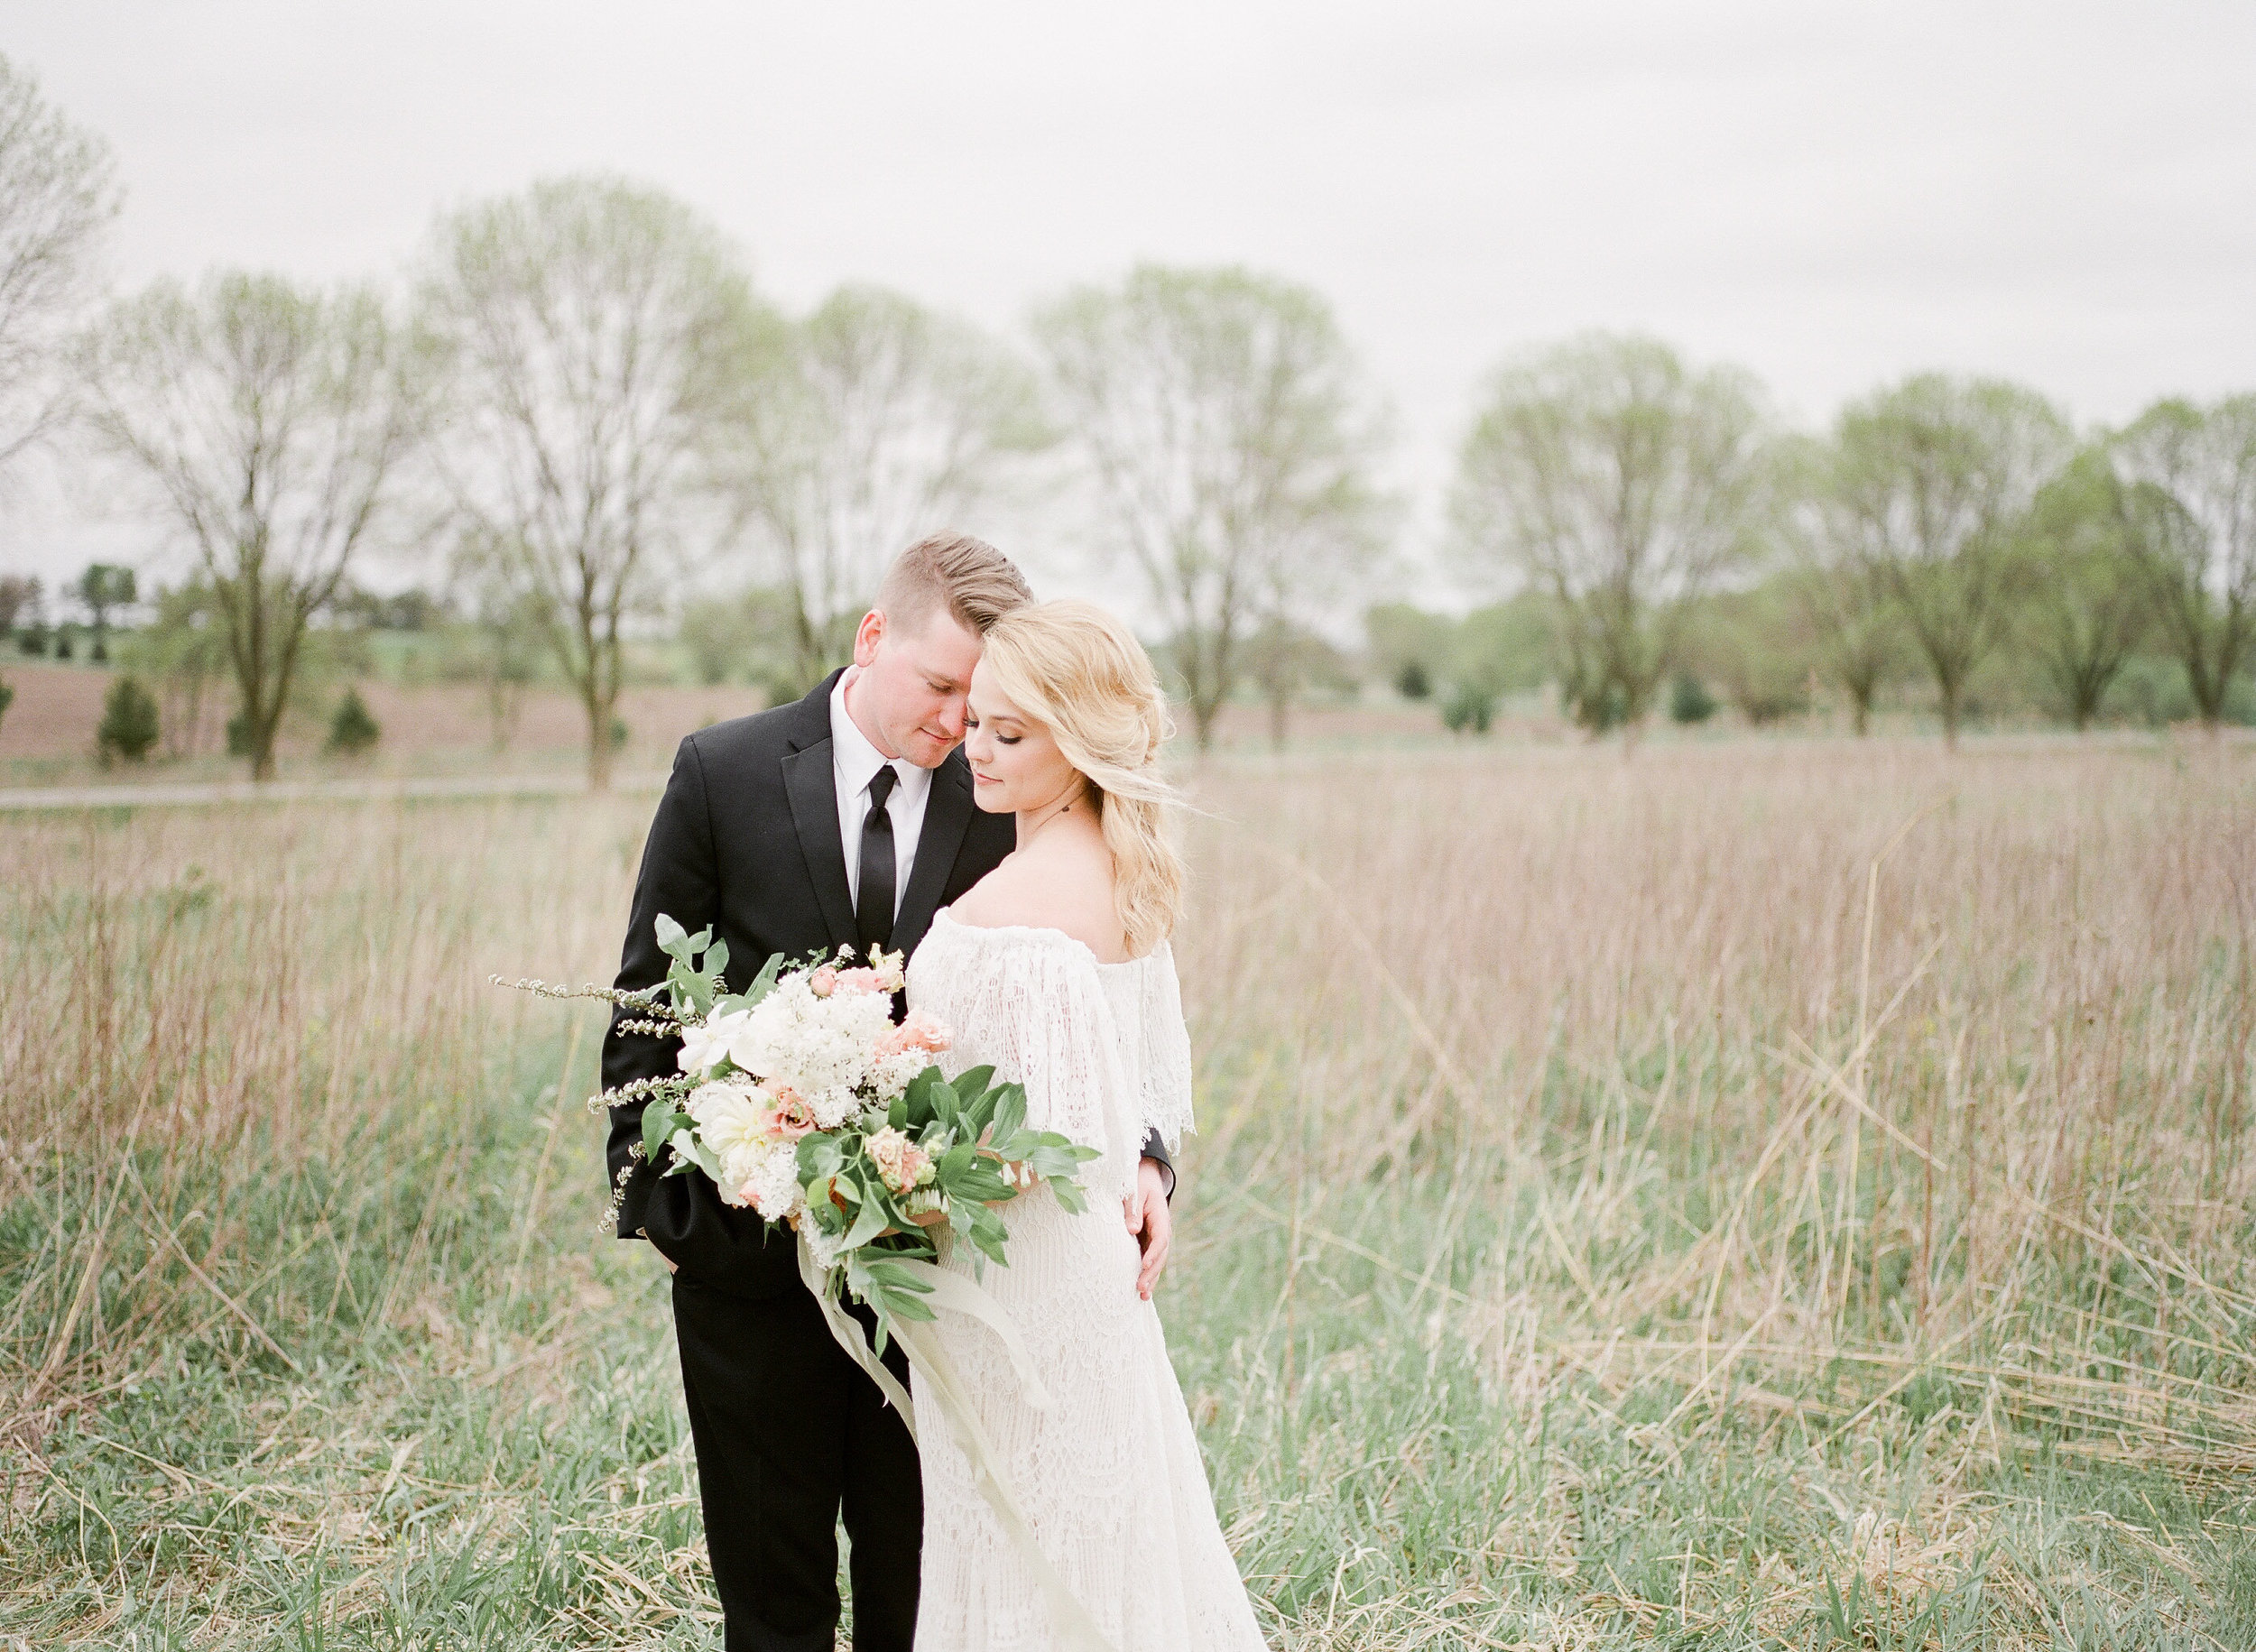 Farm to Table | Farm Wedding | Farm Elopement | Country Wedding | Ivory+Bliss | Photography Workshop | Fine Art Wedding Blog | Joy Wed | Ivory & Green Wedding | Organic Country Wedding